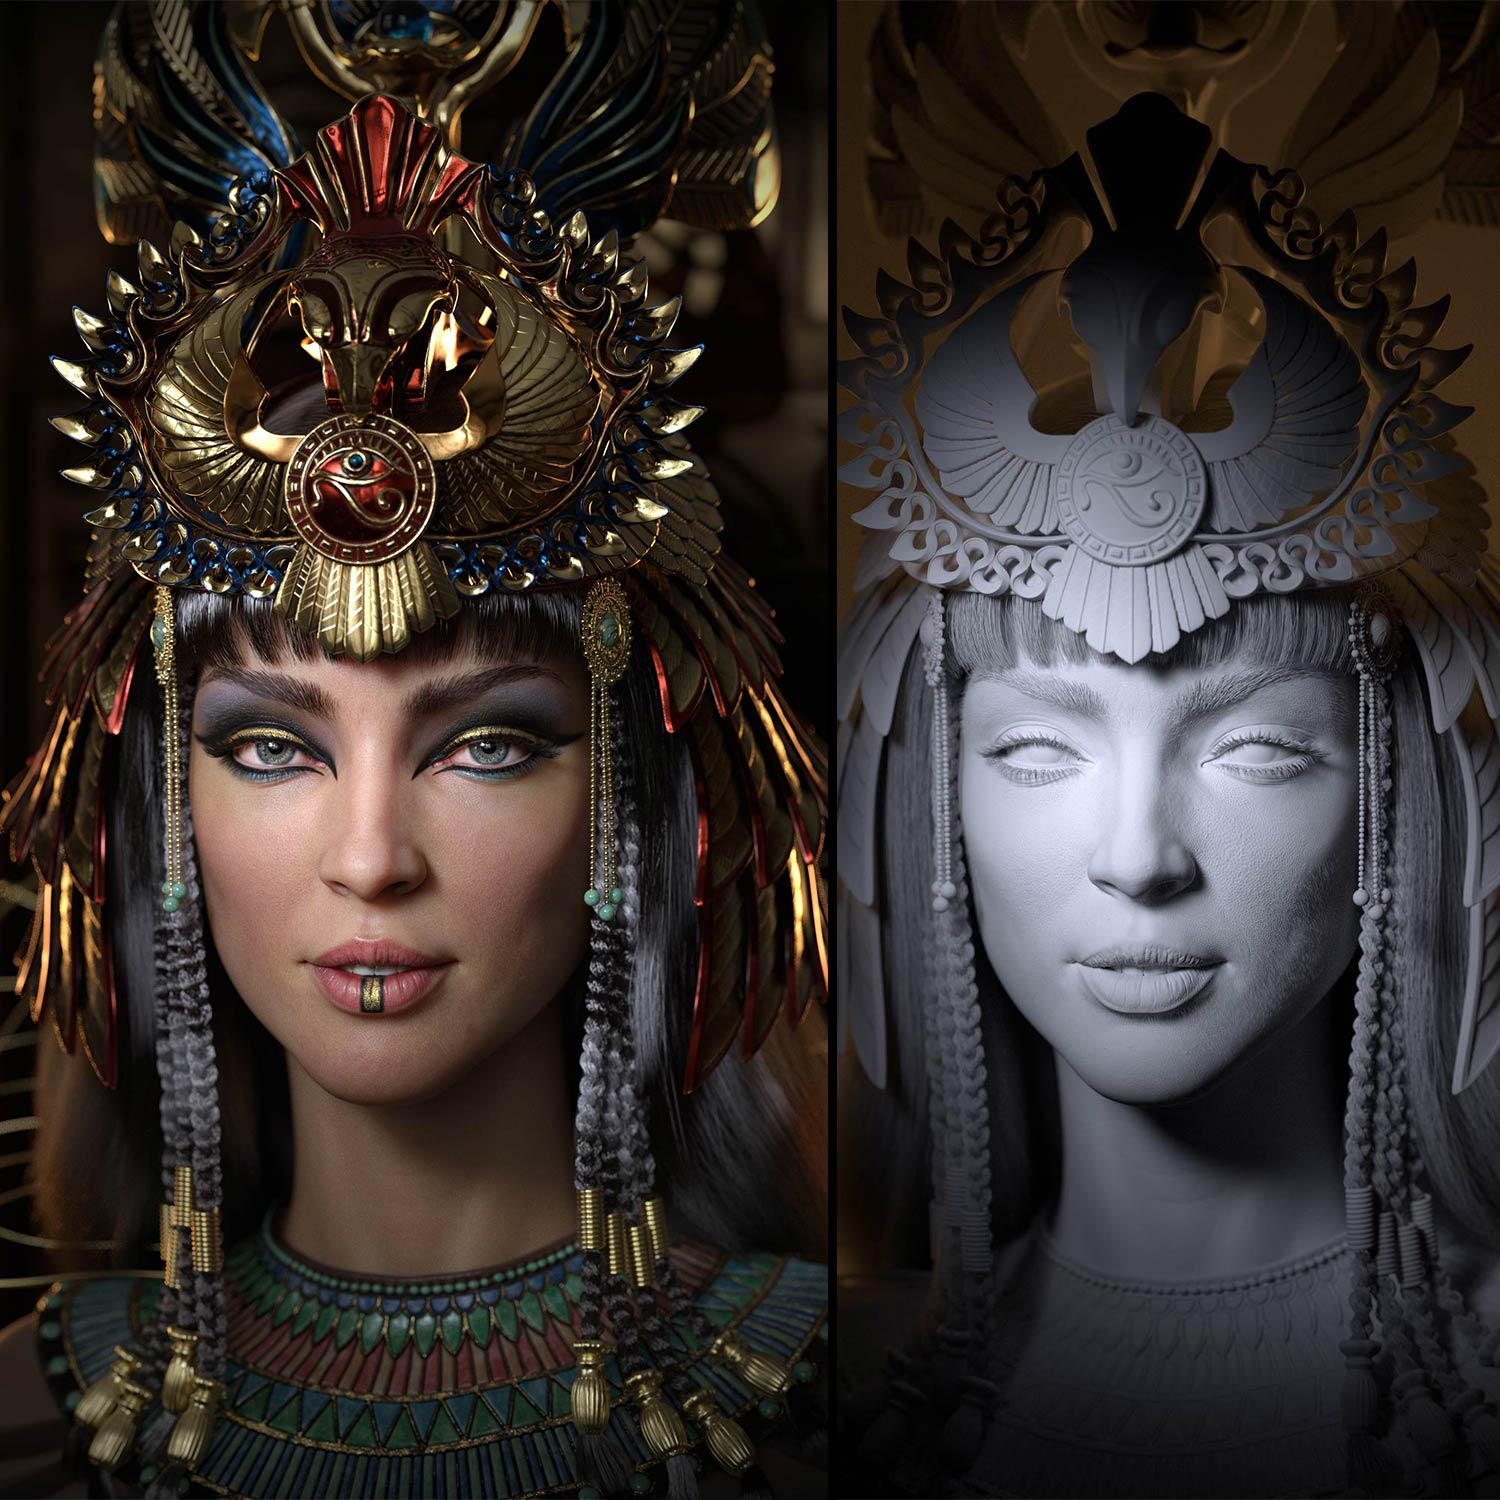 egyptian_queen_Cleopatra_3d_Nofretete_character_historical_figure_pharaoh_egypt_compare